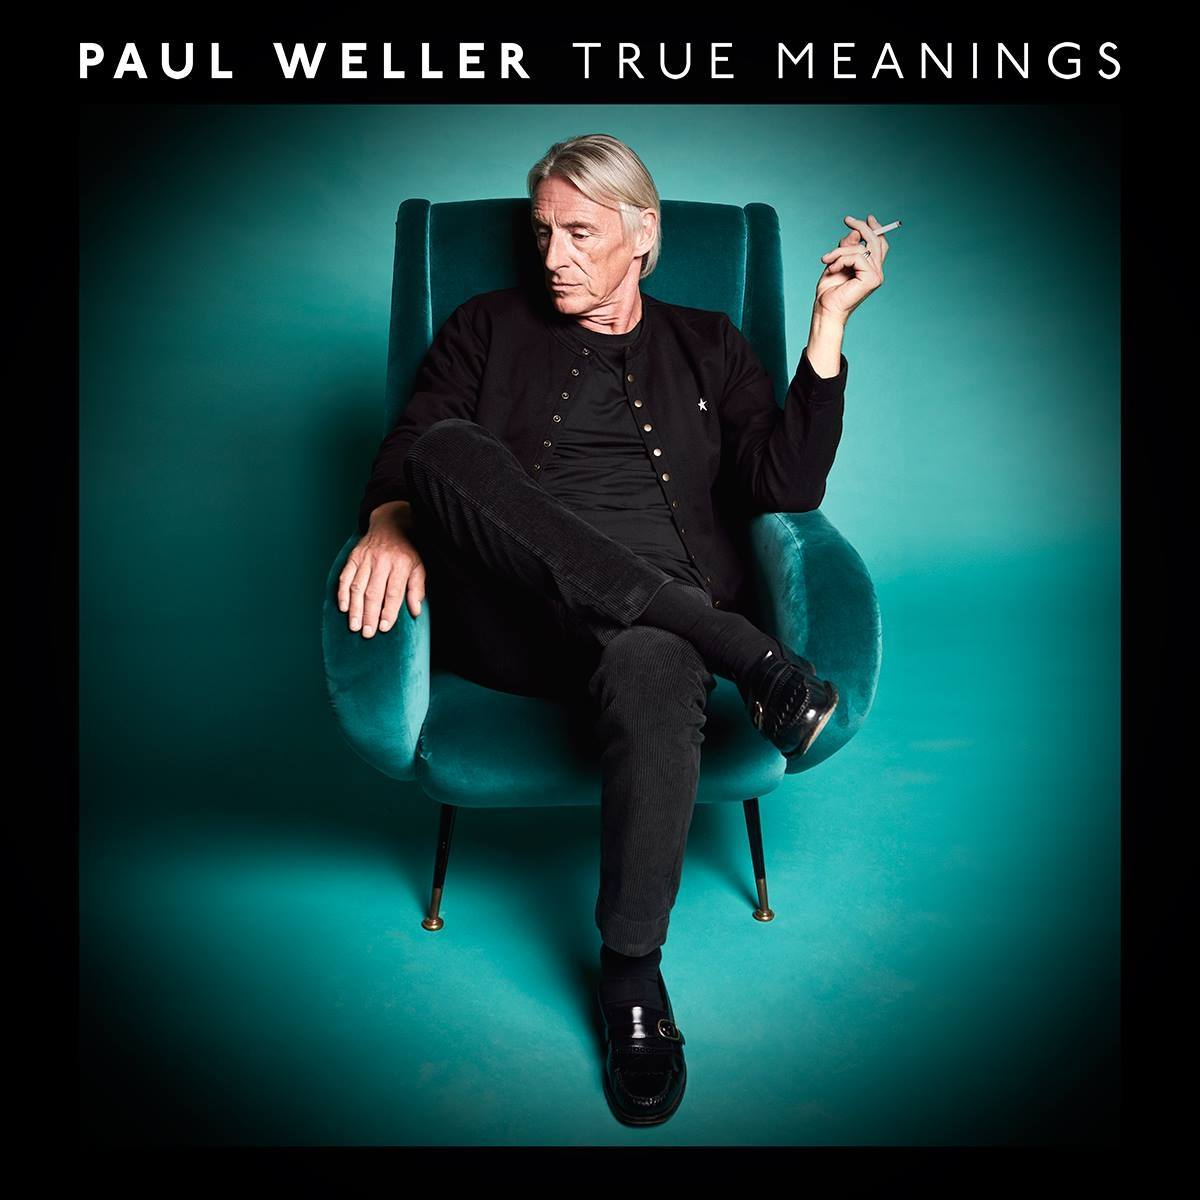 Paul Weller prezentuje nowy znakomity album True Meanings